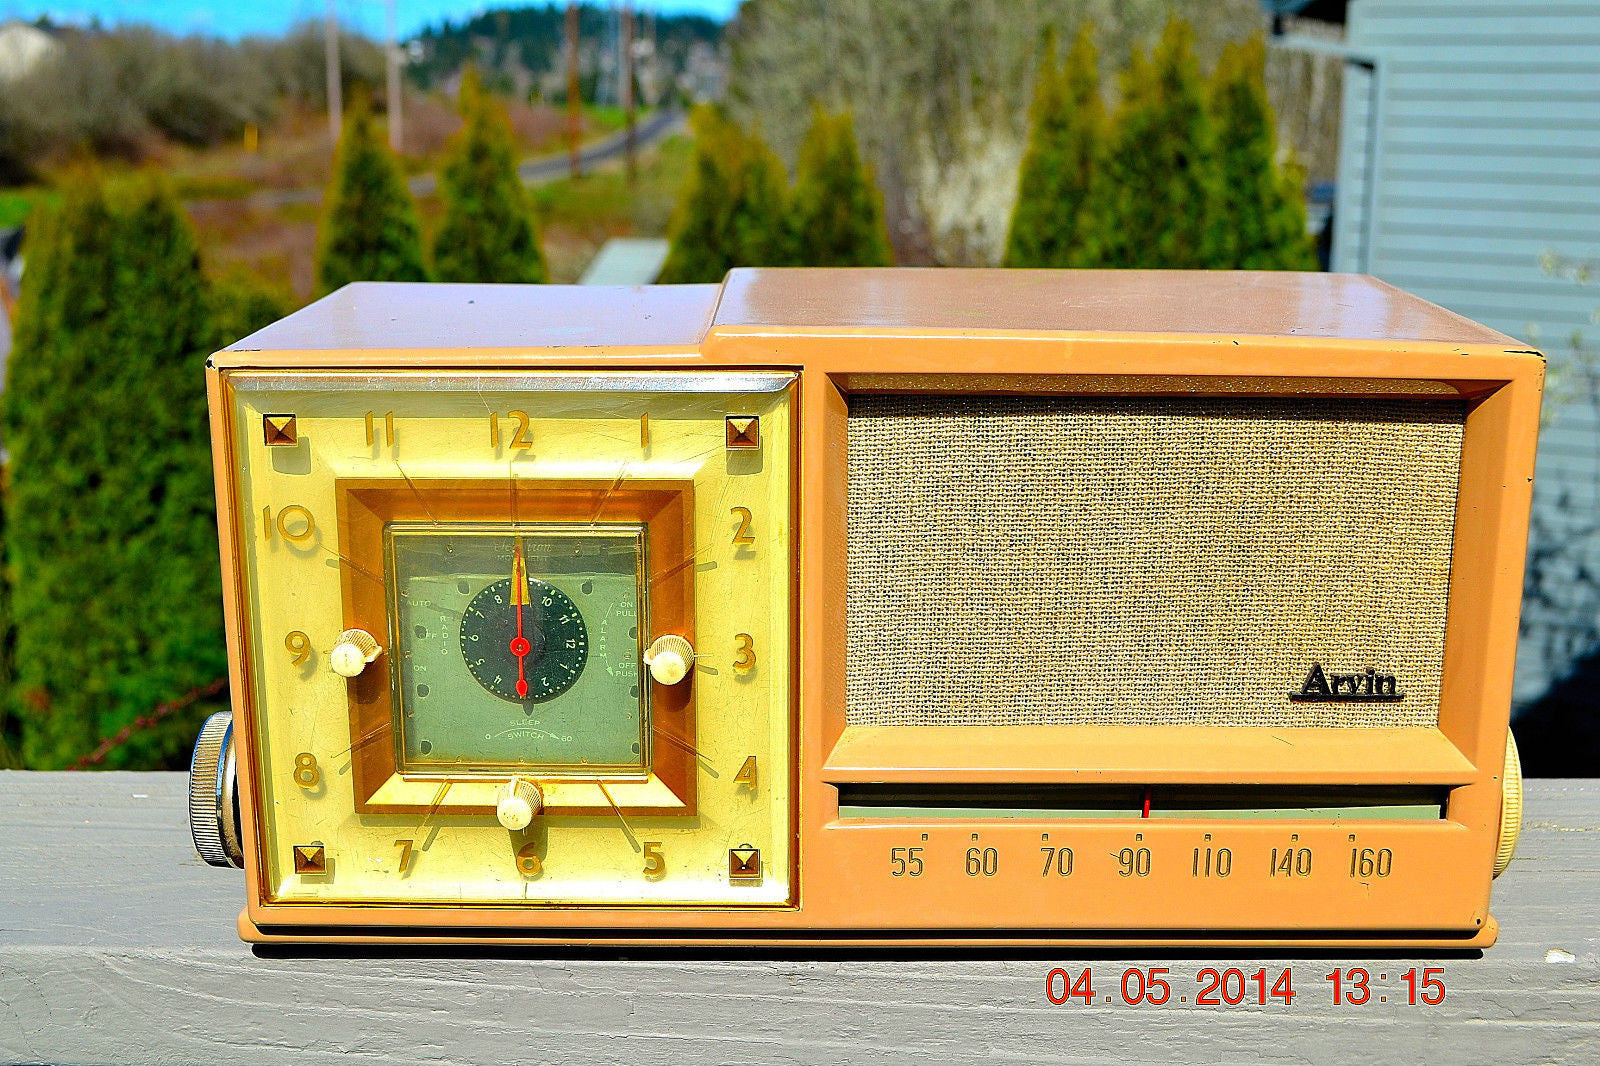 SOLD! - Sept 14, 2014 - BEAUTIFUL SANDY TAN Retro Space Age 1956 Arvin Tube AM Clock Radio WORKS! , Vintage Radio - Arvin, Retro Radio Farm  - 1